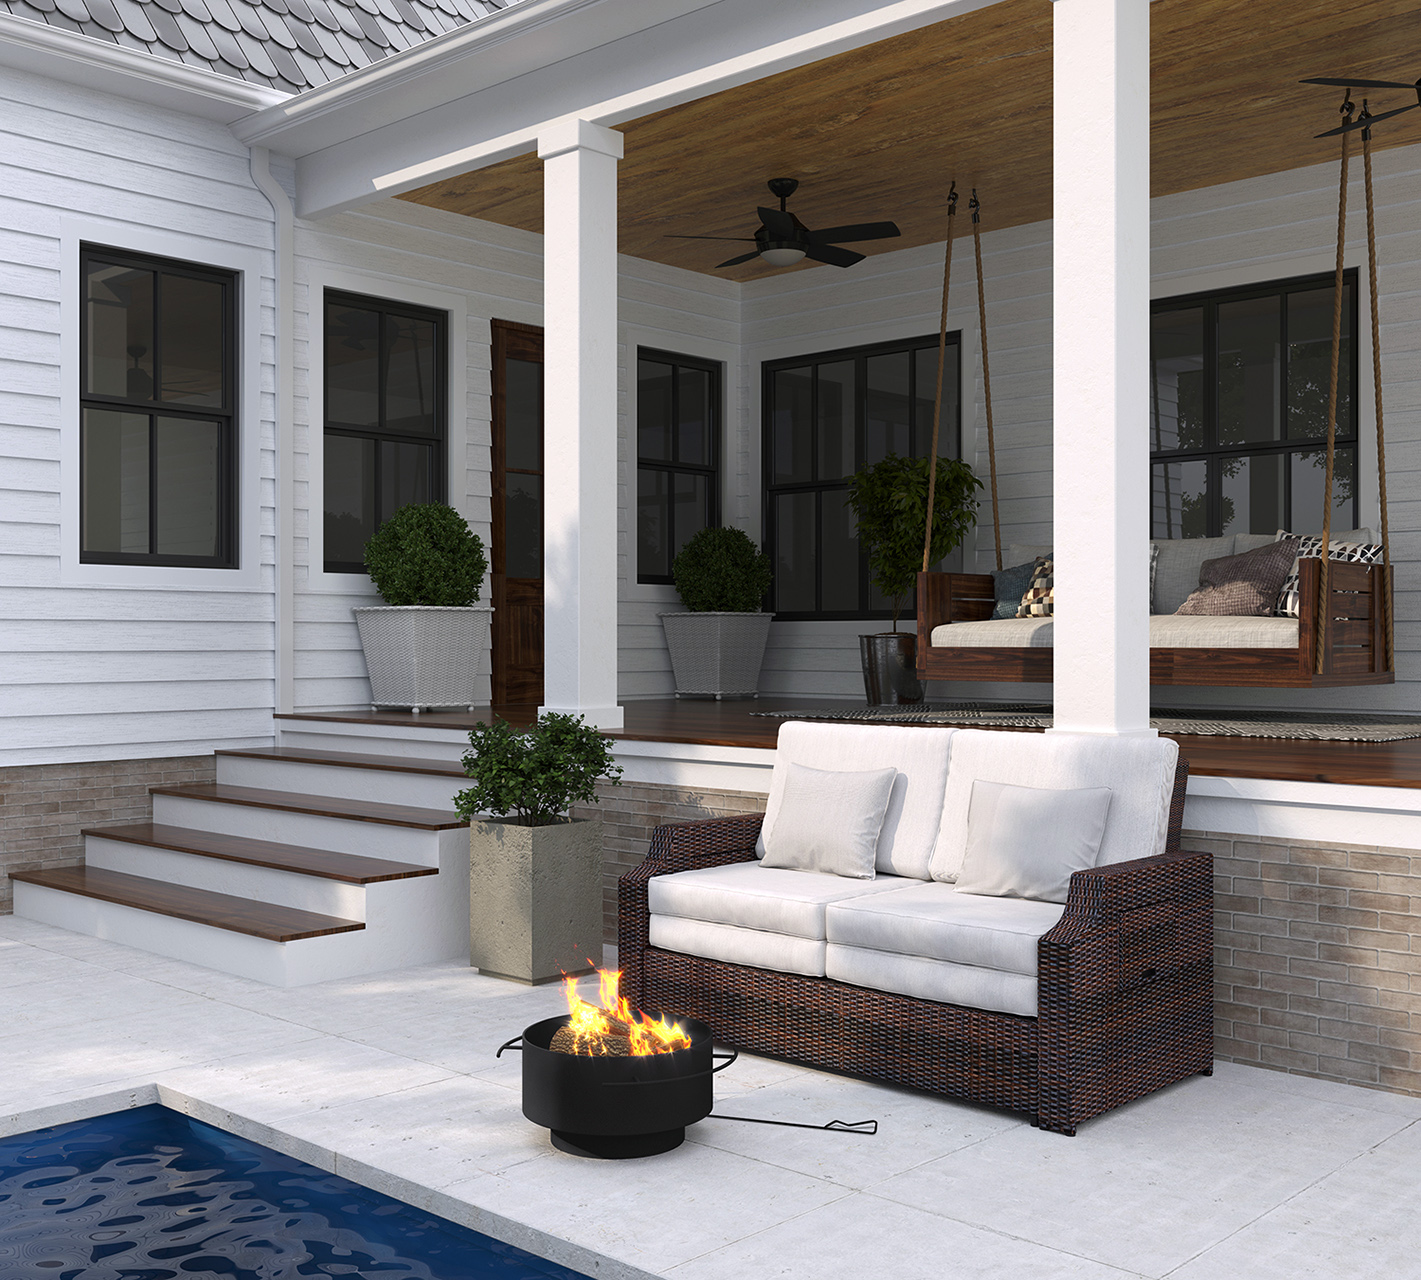 Wood Burning Fire Pit with Outdoor Furniture